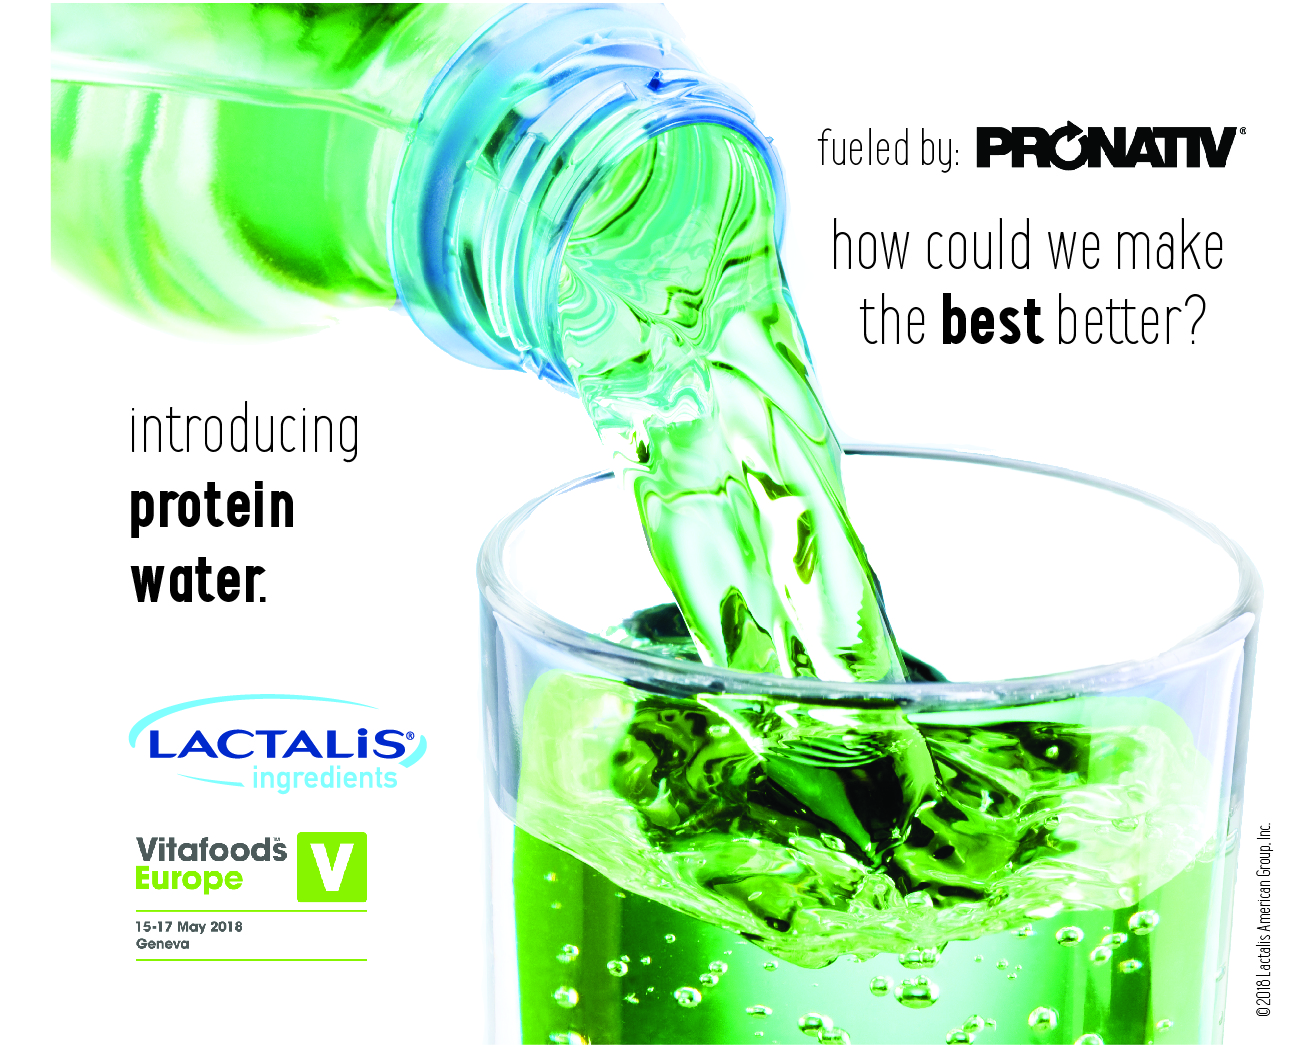 ProteinWater_BannerAd_GREEN_FINAL (3)